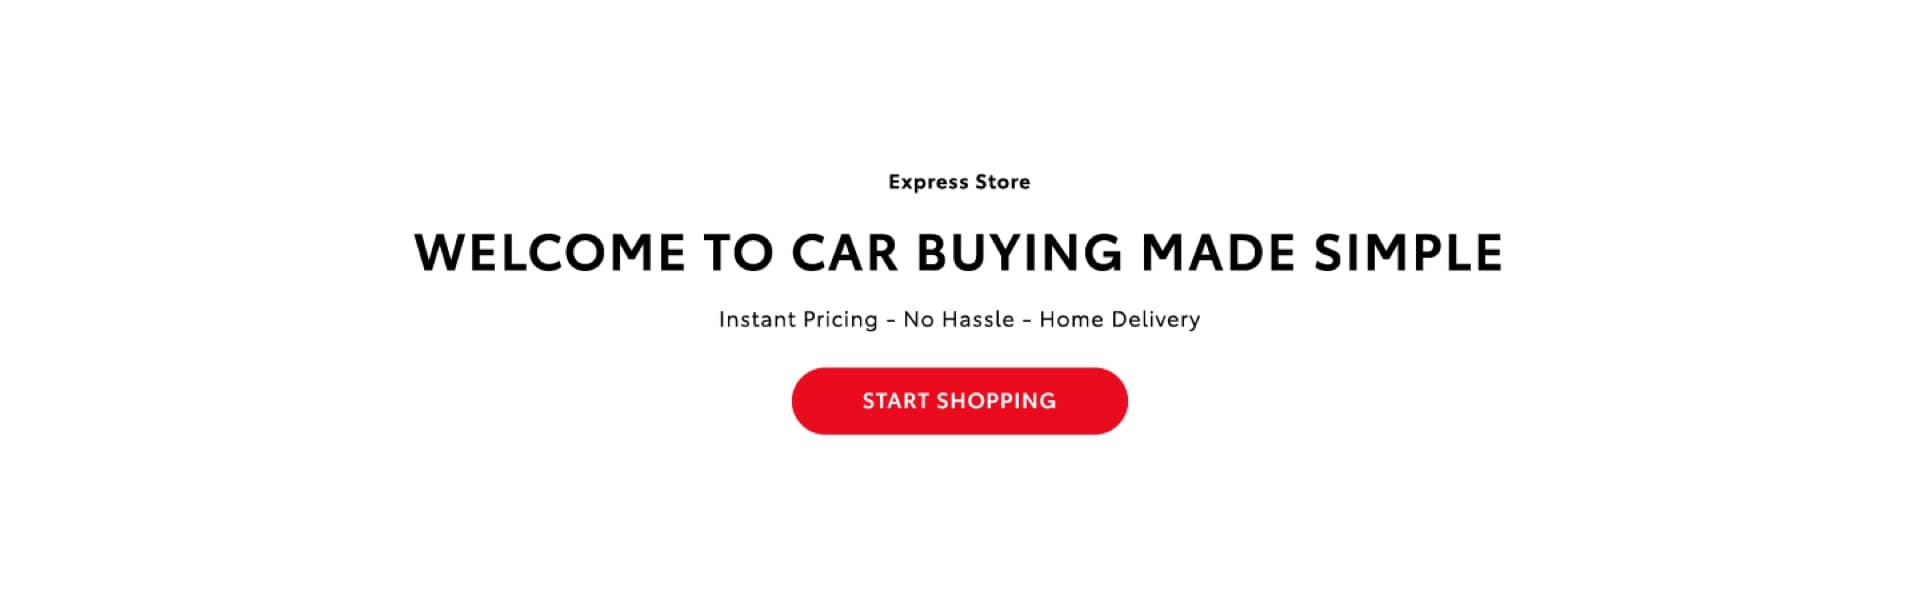 Banner for Express online car buying